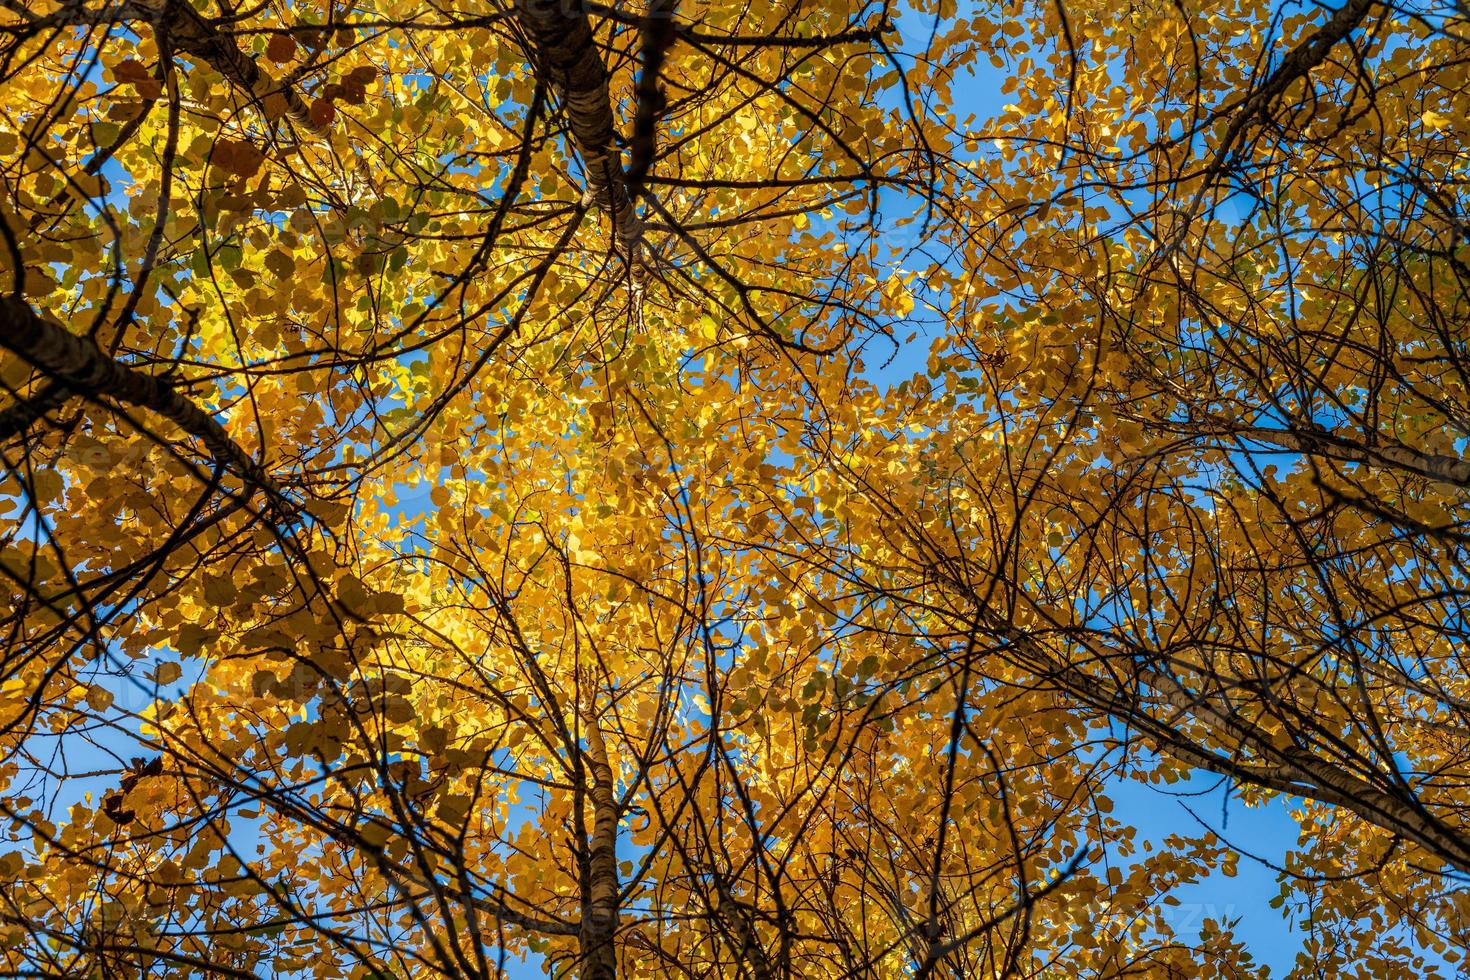 Low angle view of tree canopies avec des feuilles jaunes vibrantes photo